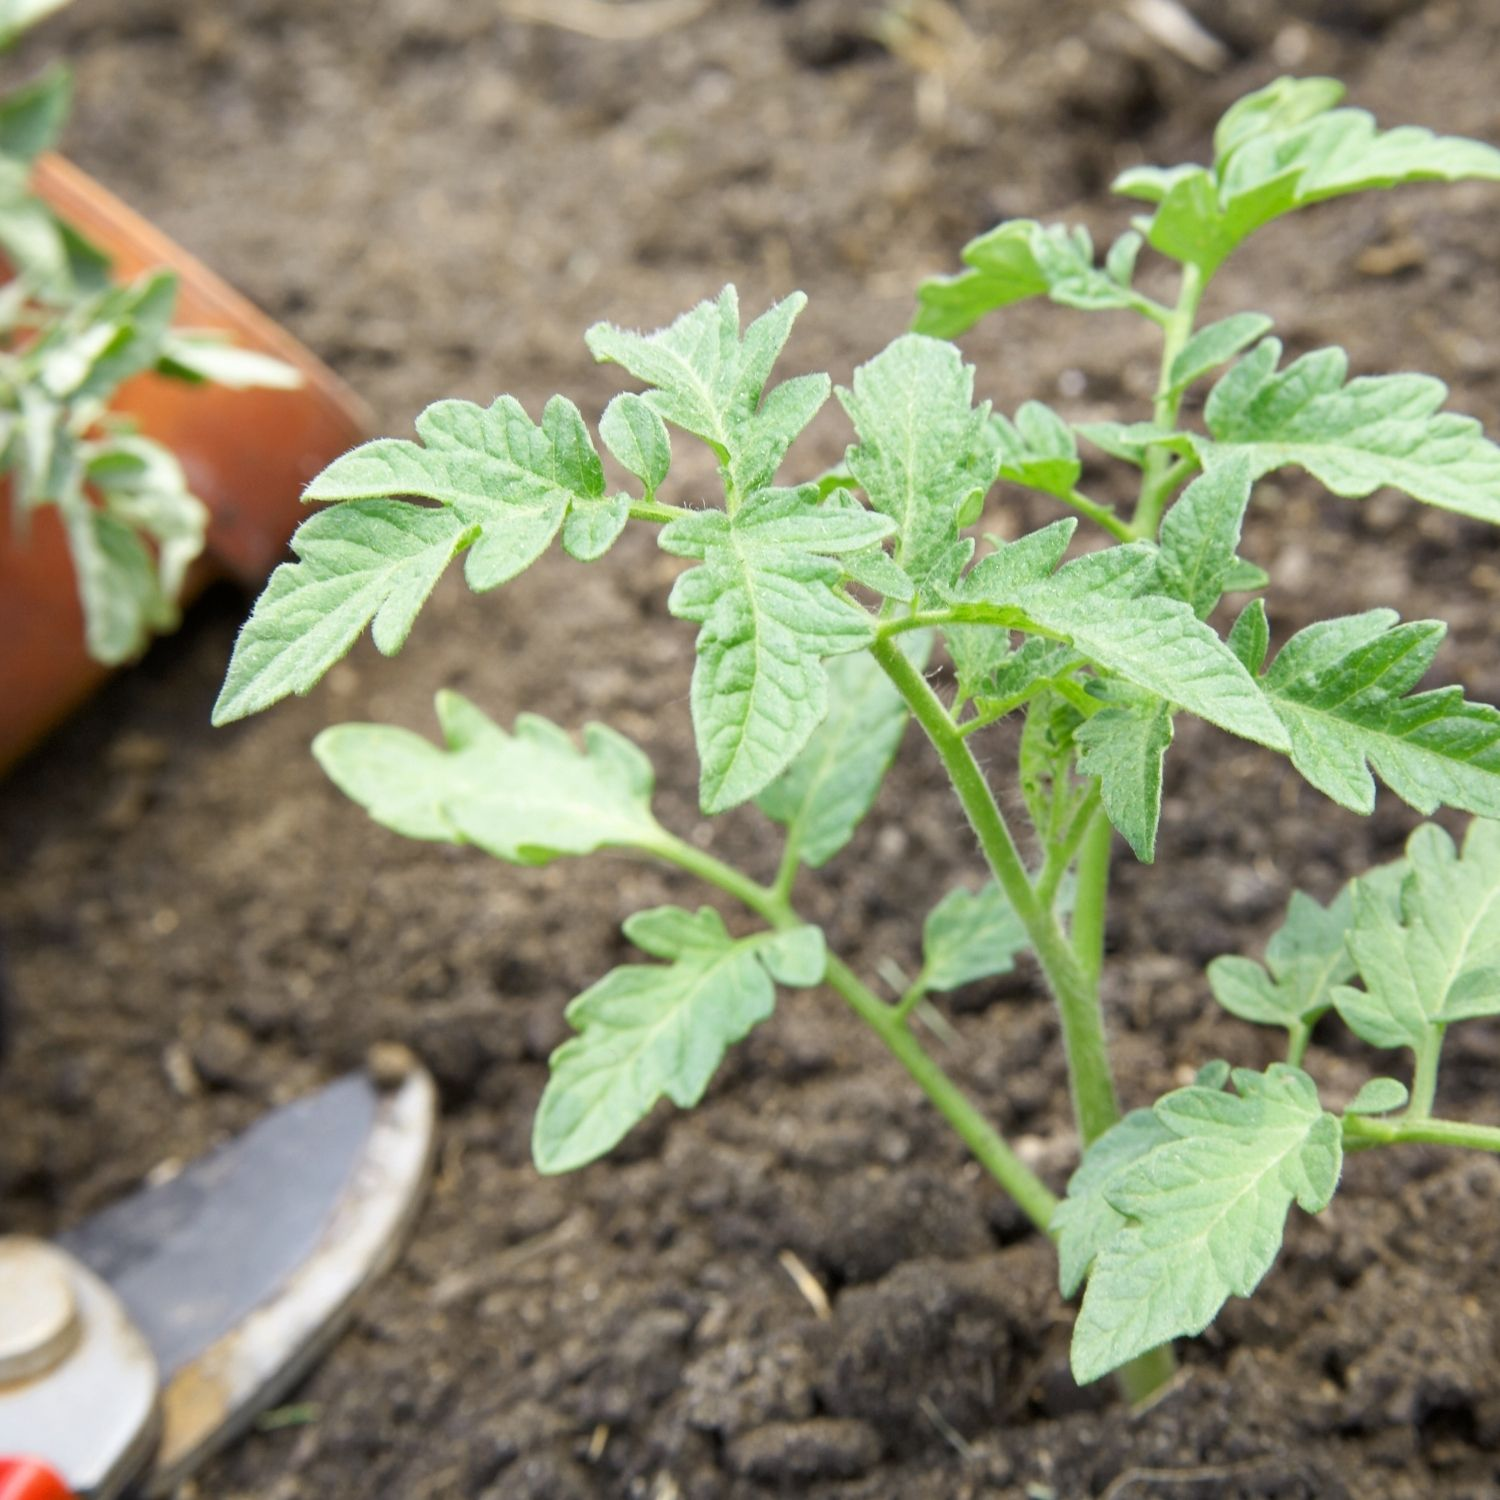 A tomato transplant getting planted in the garden